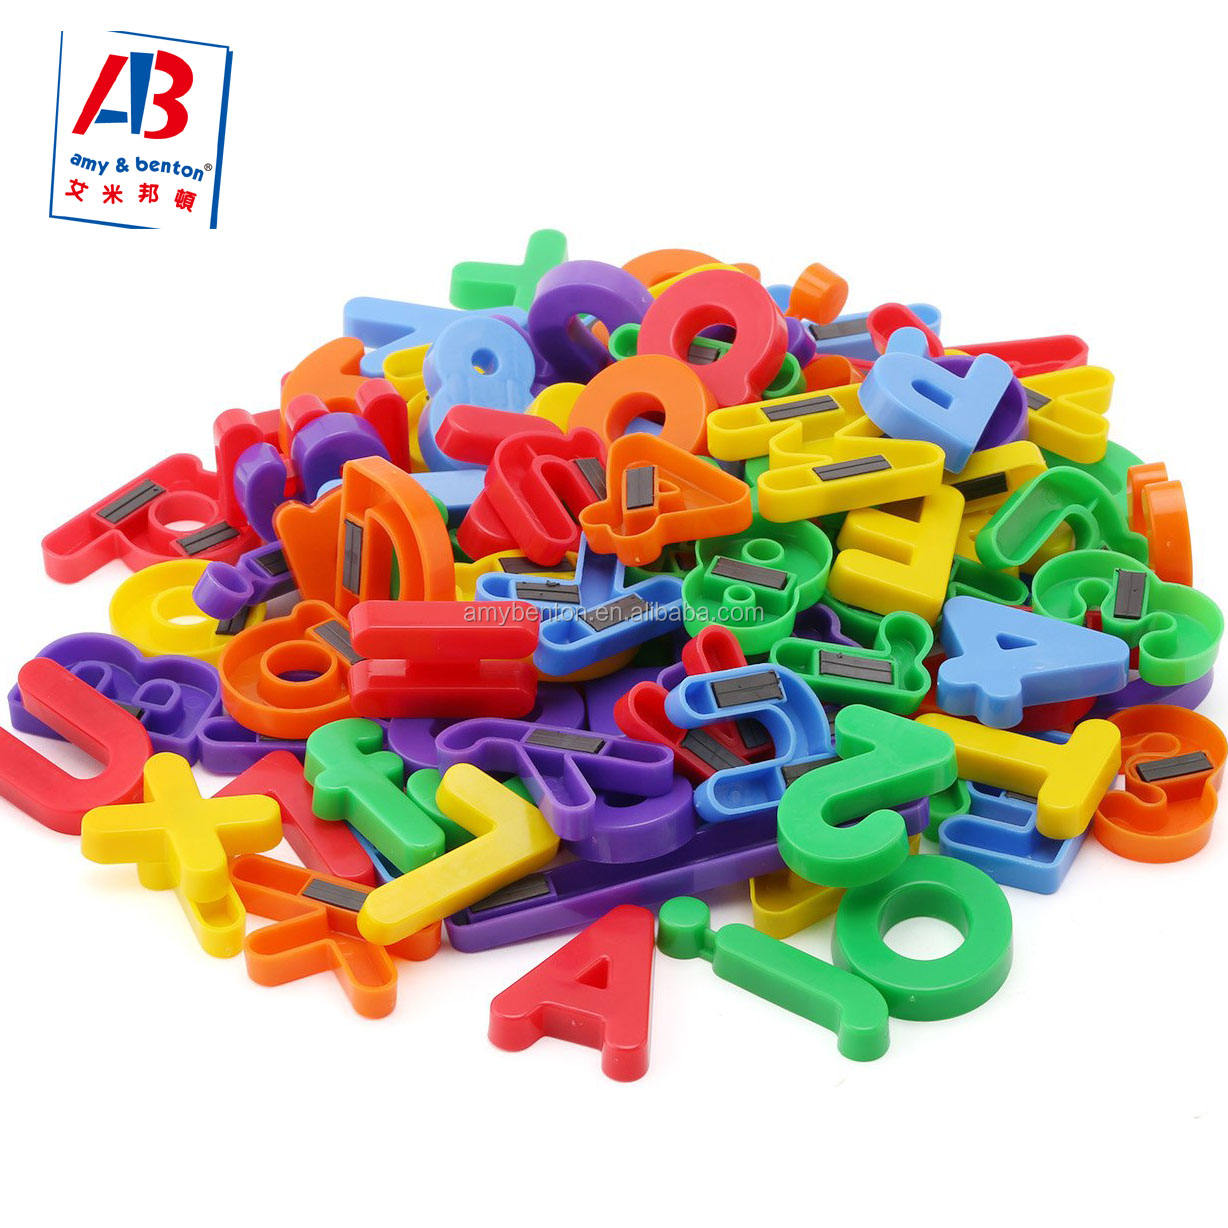 Kids Cheap ABC 123 Fridge Magnet Plastic Magnetic Alphabet Letters and Numbers